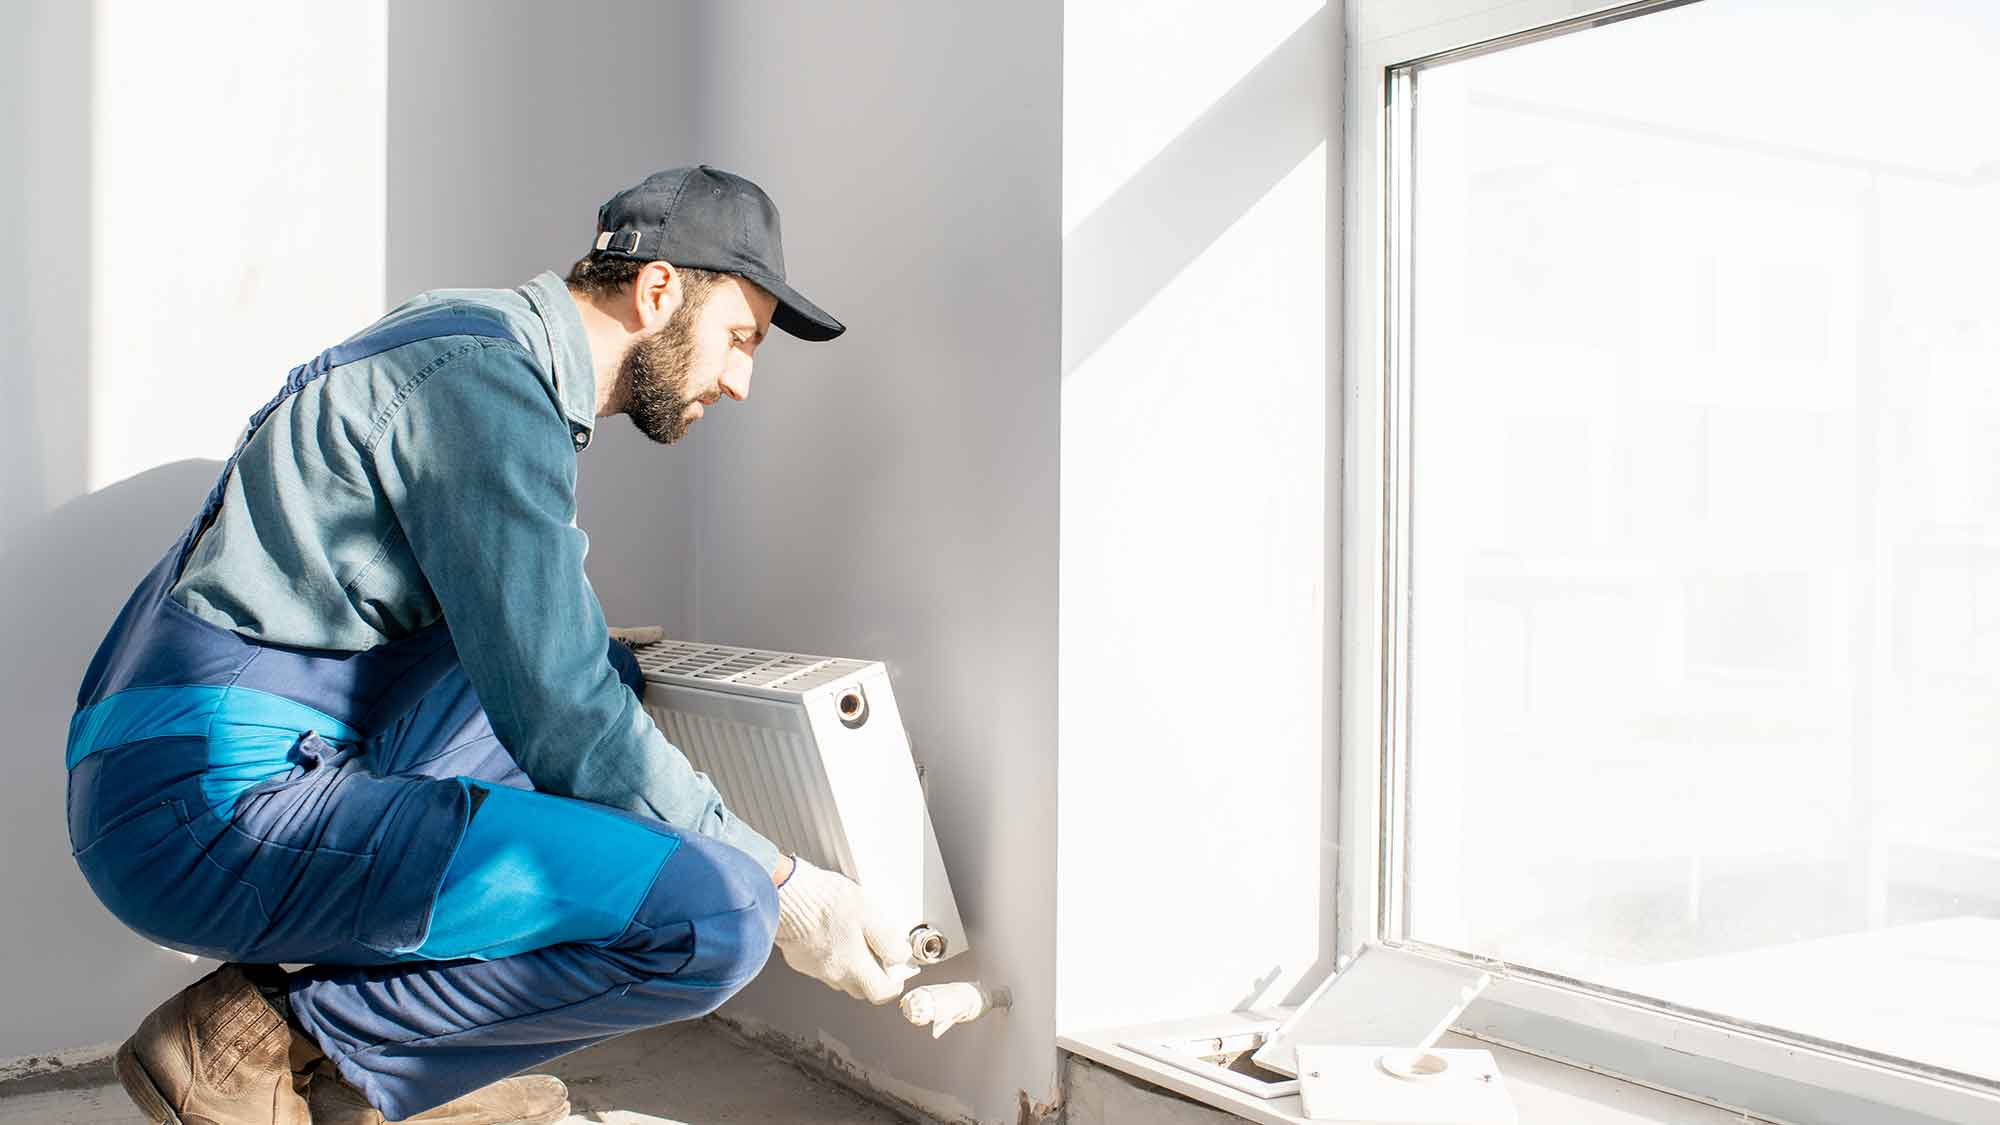 central heating repair essex maintenance leigh on sea services